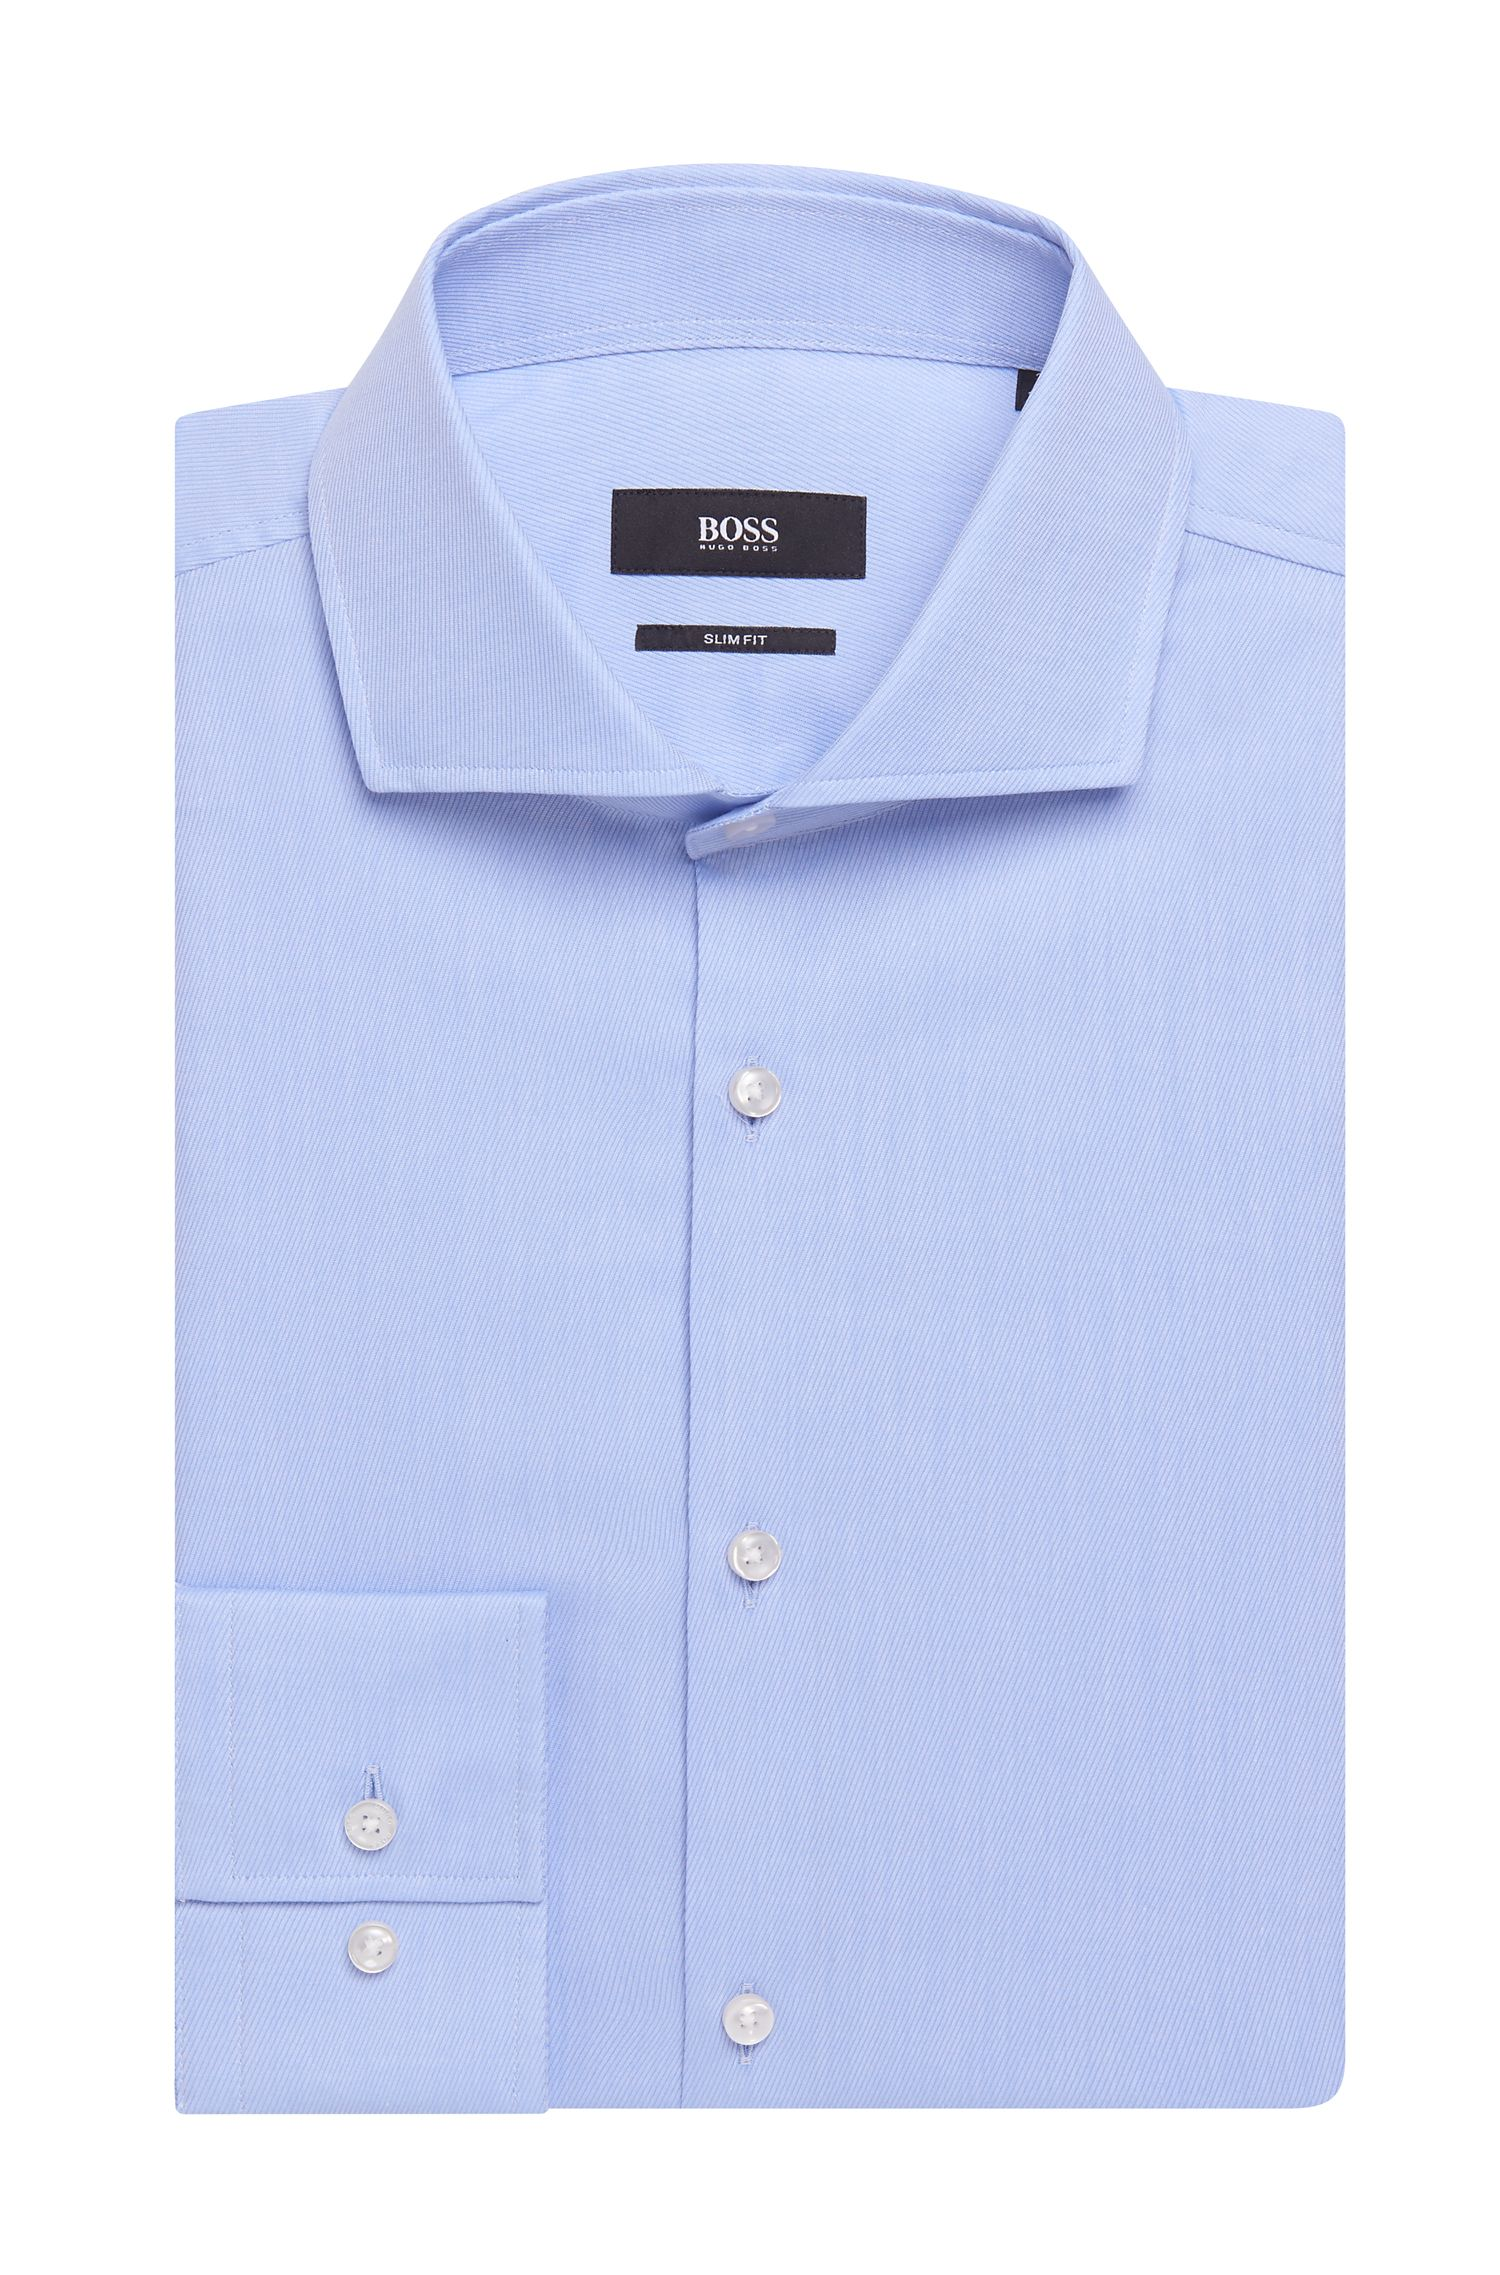 Traveler Cotton Dress Shirt with Stretch Tailoring, Slim Fit | Jason